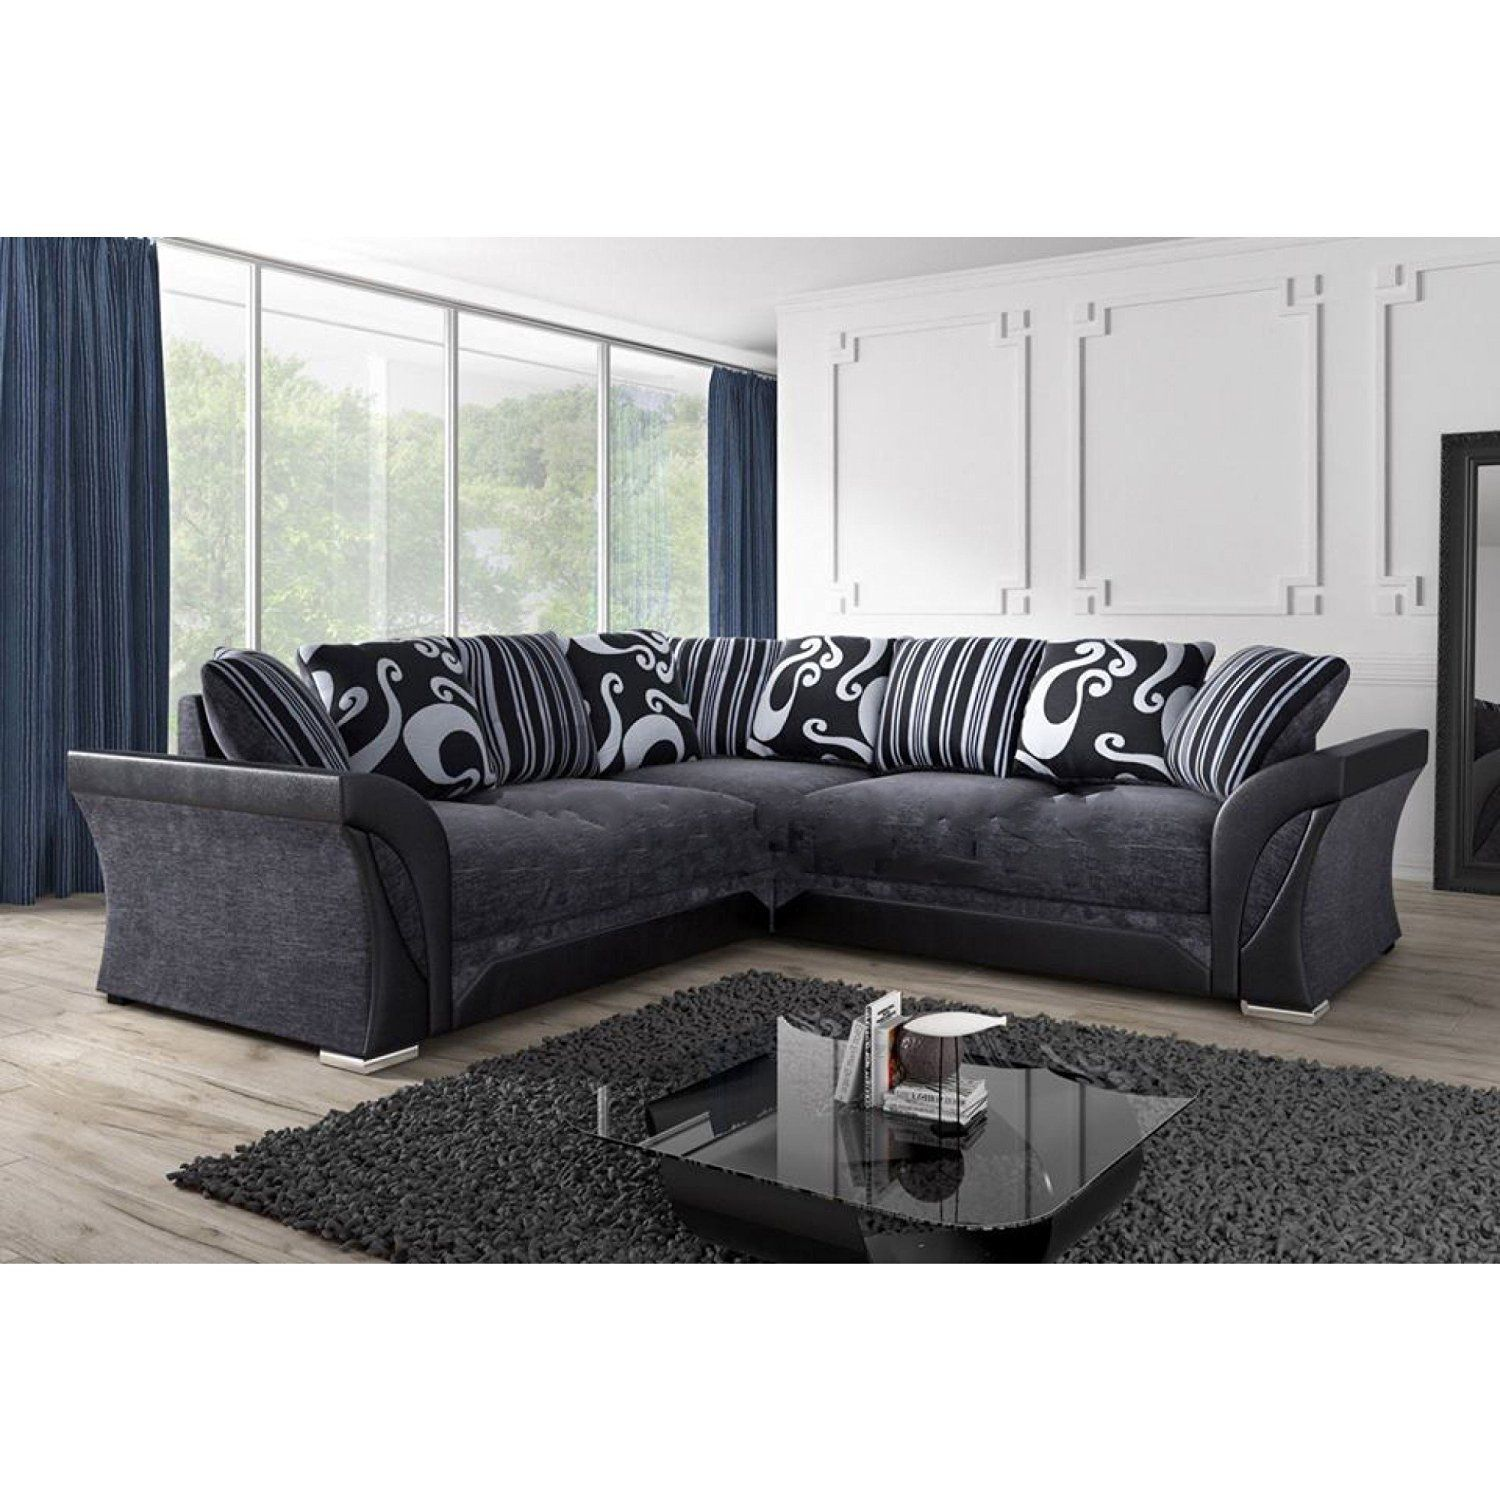 What To Know Before Getting A Wonderful Corner Chesterfield Sofa Today Black Corner Sofa Leather Corner Sofa Black And Grey Corner Sofa